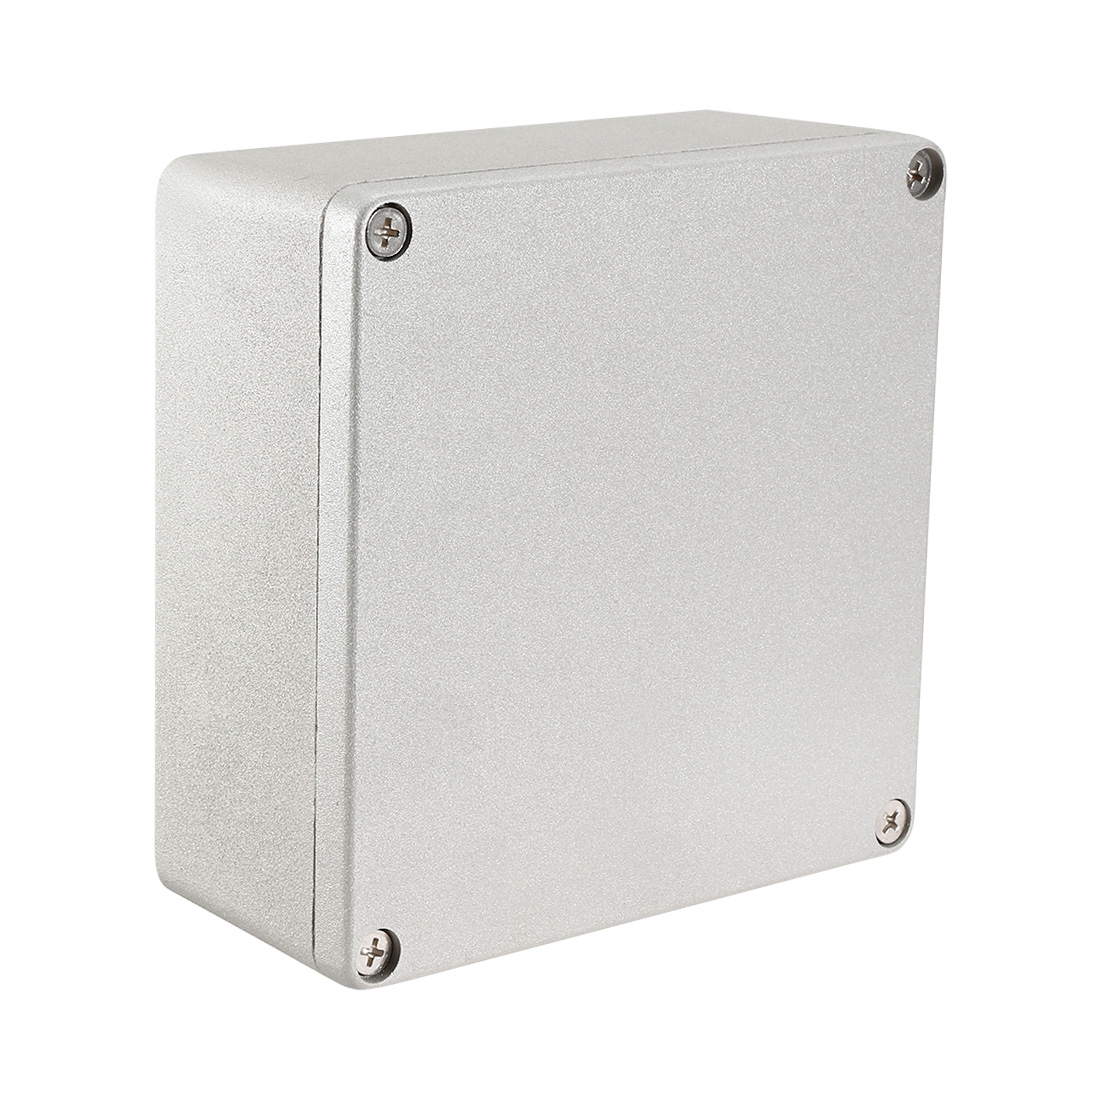 """6.3""""x6.3""""x2.8""""(160mmx160mmx70mm) Aluminum Junction Box Universal Electric Project Enclosure"""